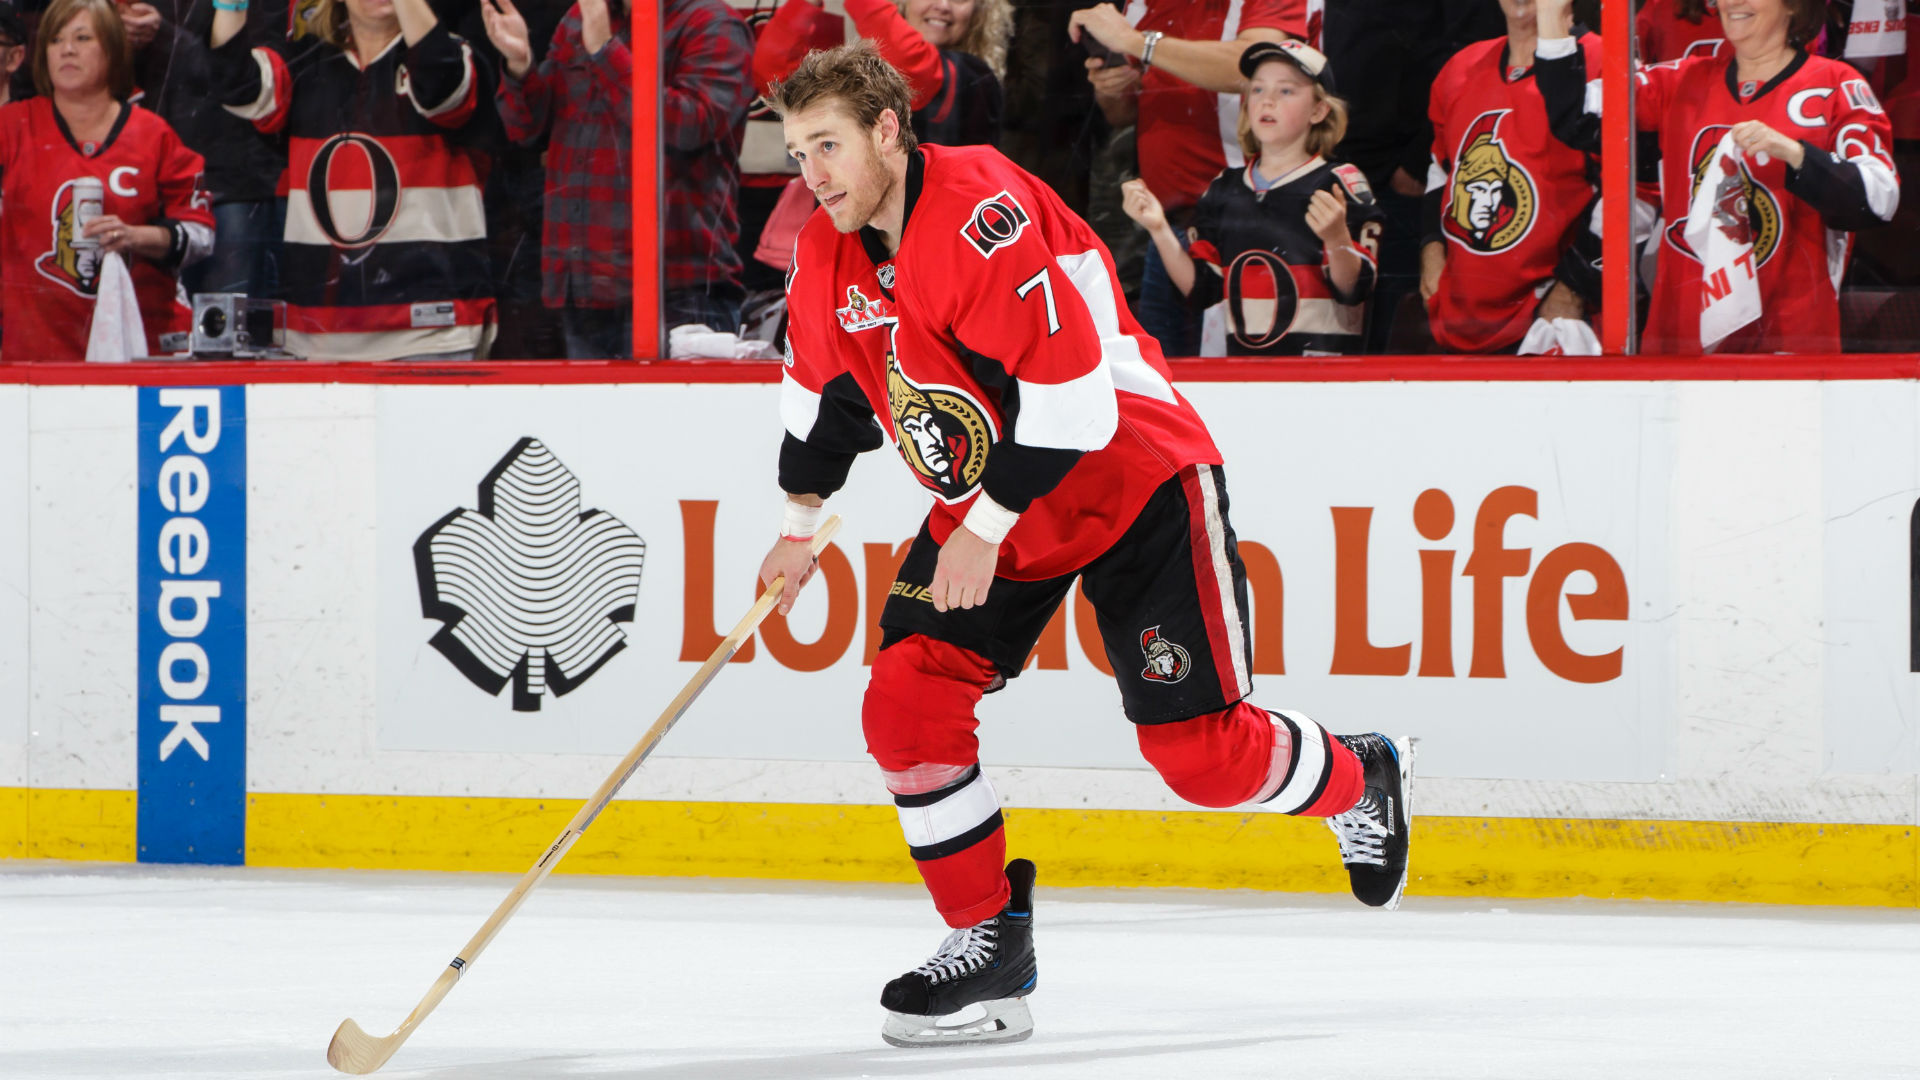 Nhl Trades Contract Impasse Paves Way For Kyle Turris To Join Predators Sporting News Canada